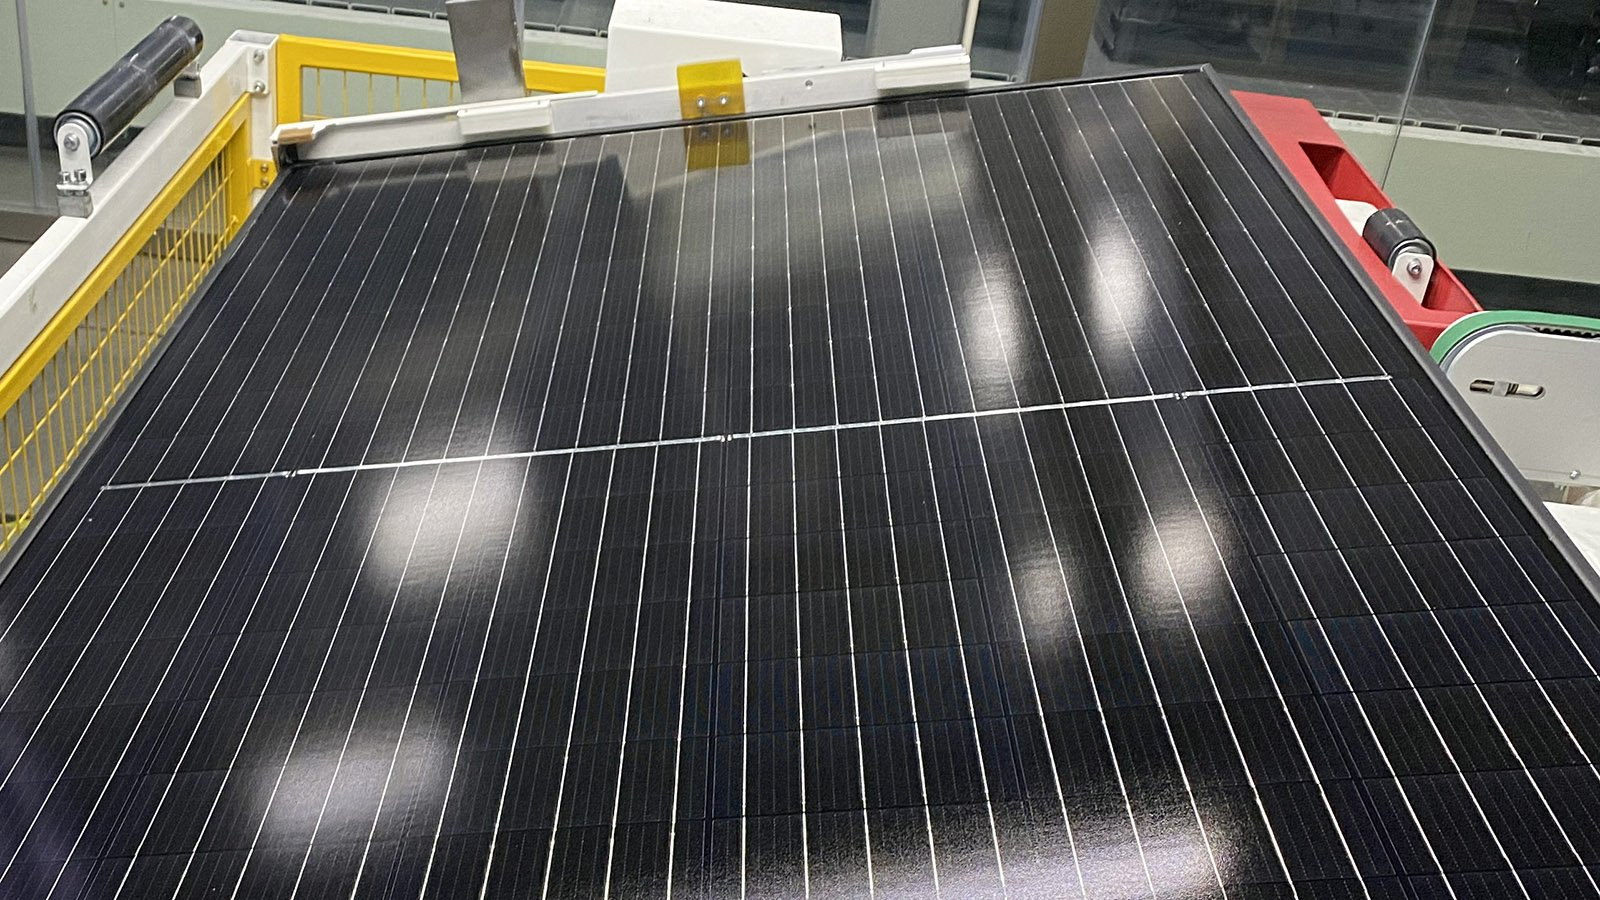 Production for half cut cell solar panels